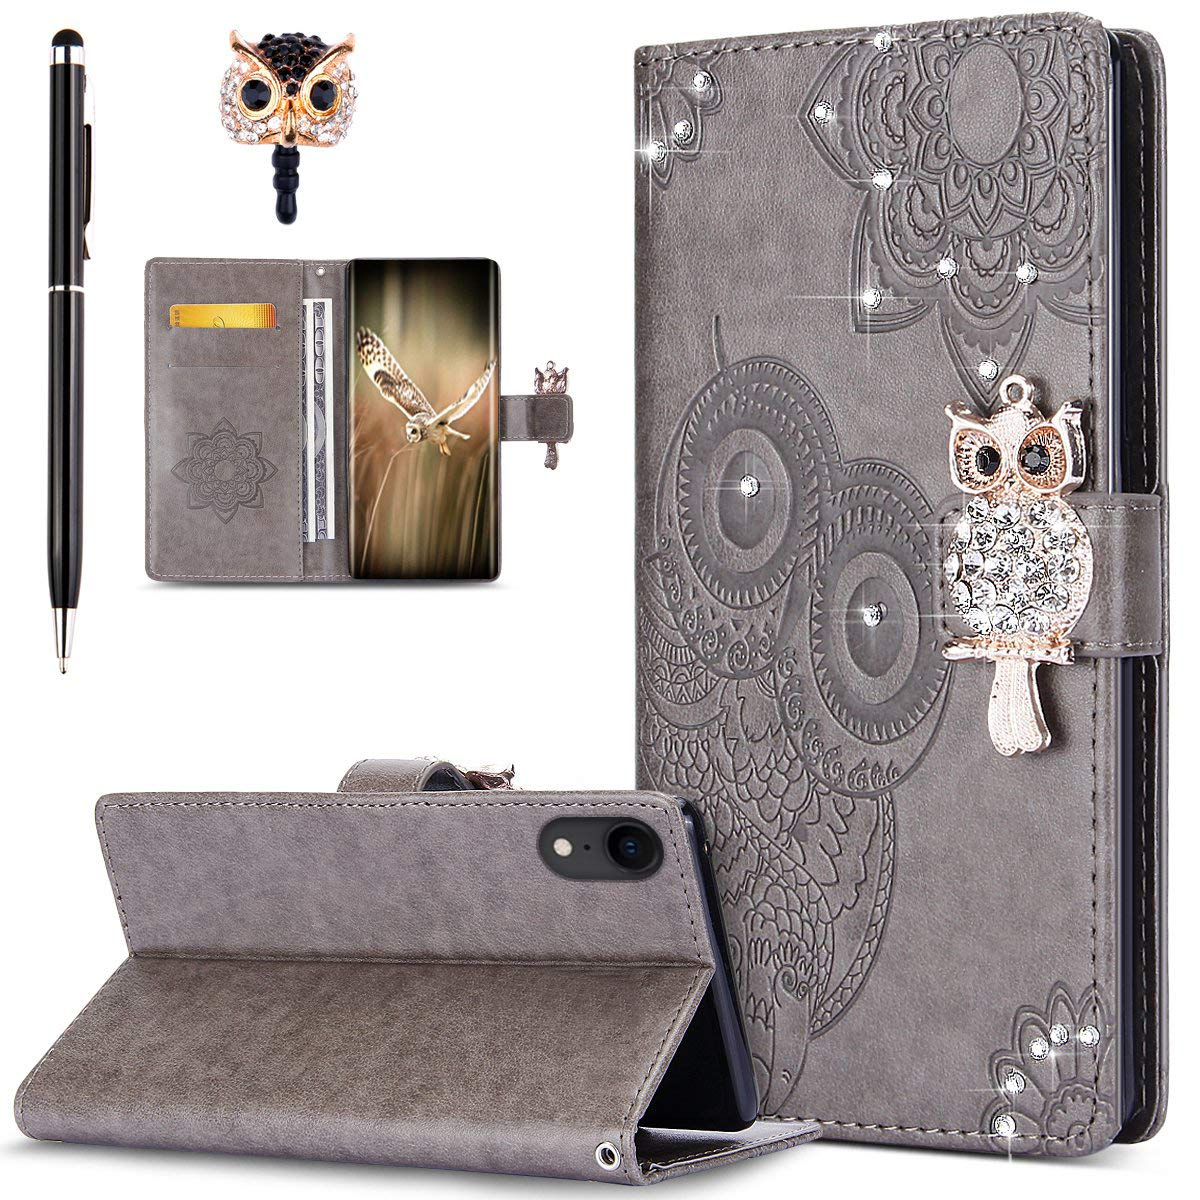 ikasus Case for iPhone Xs Max Cover,Bling Diamonds Glitter Embossing Mandala Owl PU Leather Fold Wallet Flip Stand Protective Case Cover Dust Plug /& Stylus for iPhone Xs Max Wallet Case,Rose Gold